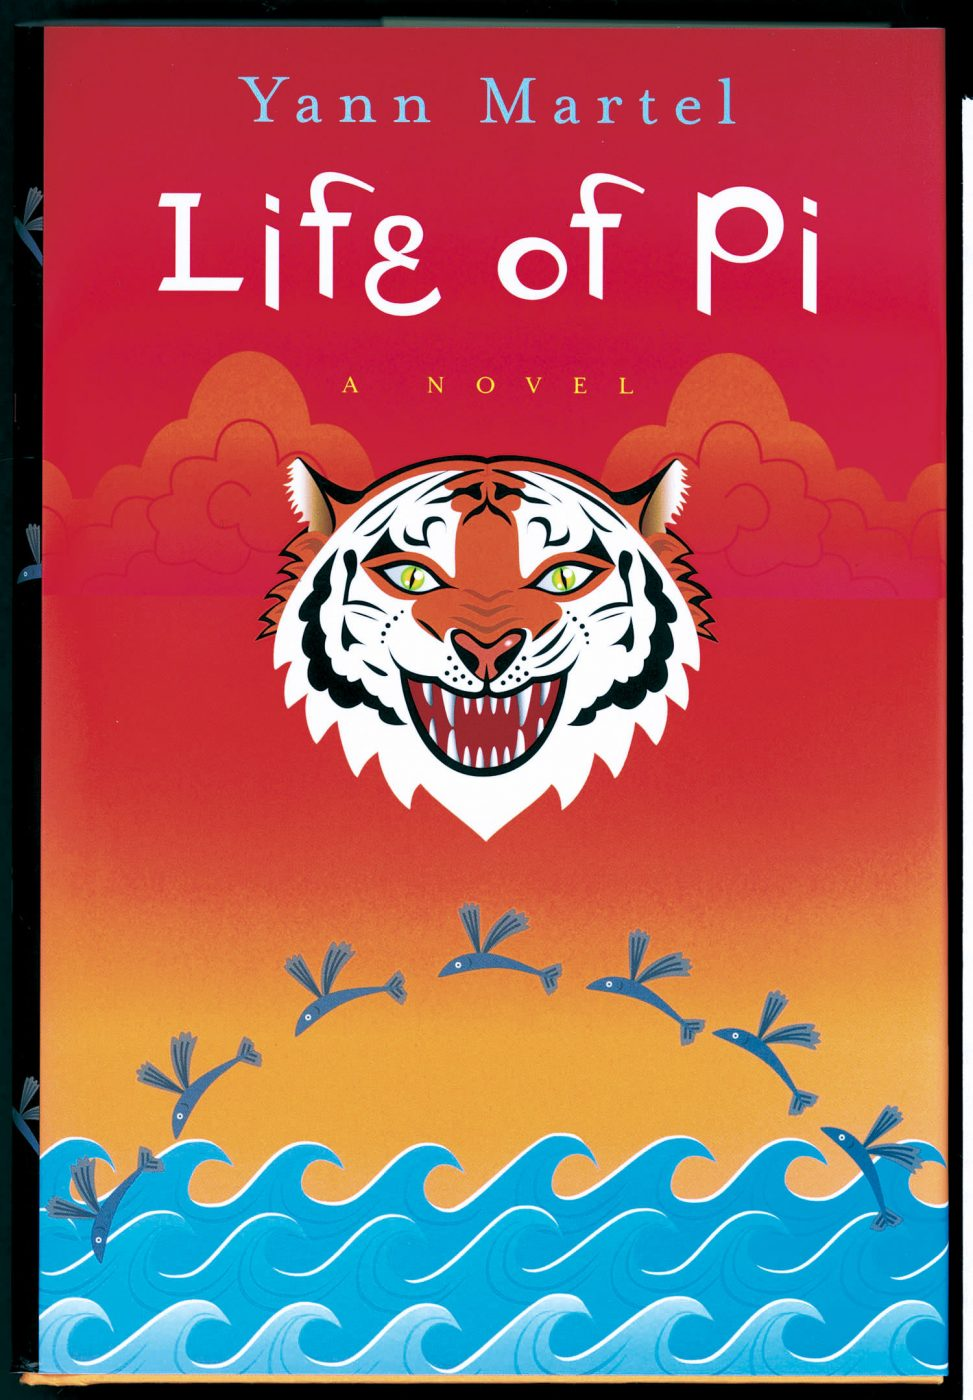 life of pi storytelling The nature of storytelling itself is threaded throughout life of pi, as the book is told in a complex way through several layers of narration the real author writes in the first person as a fictional author similar to yann martel himself, and this author retells the story he heard from the adult pi about pi's younger self at the end, in a.